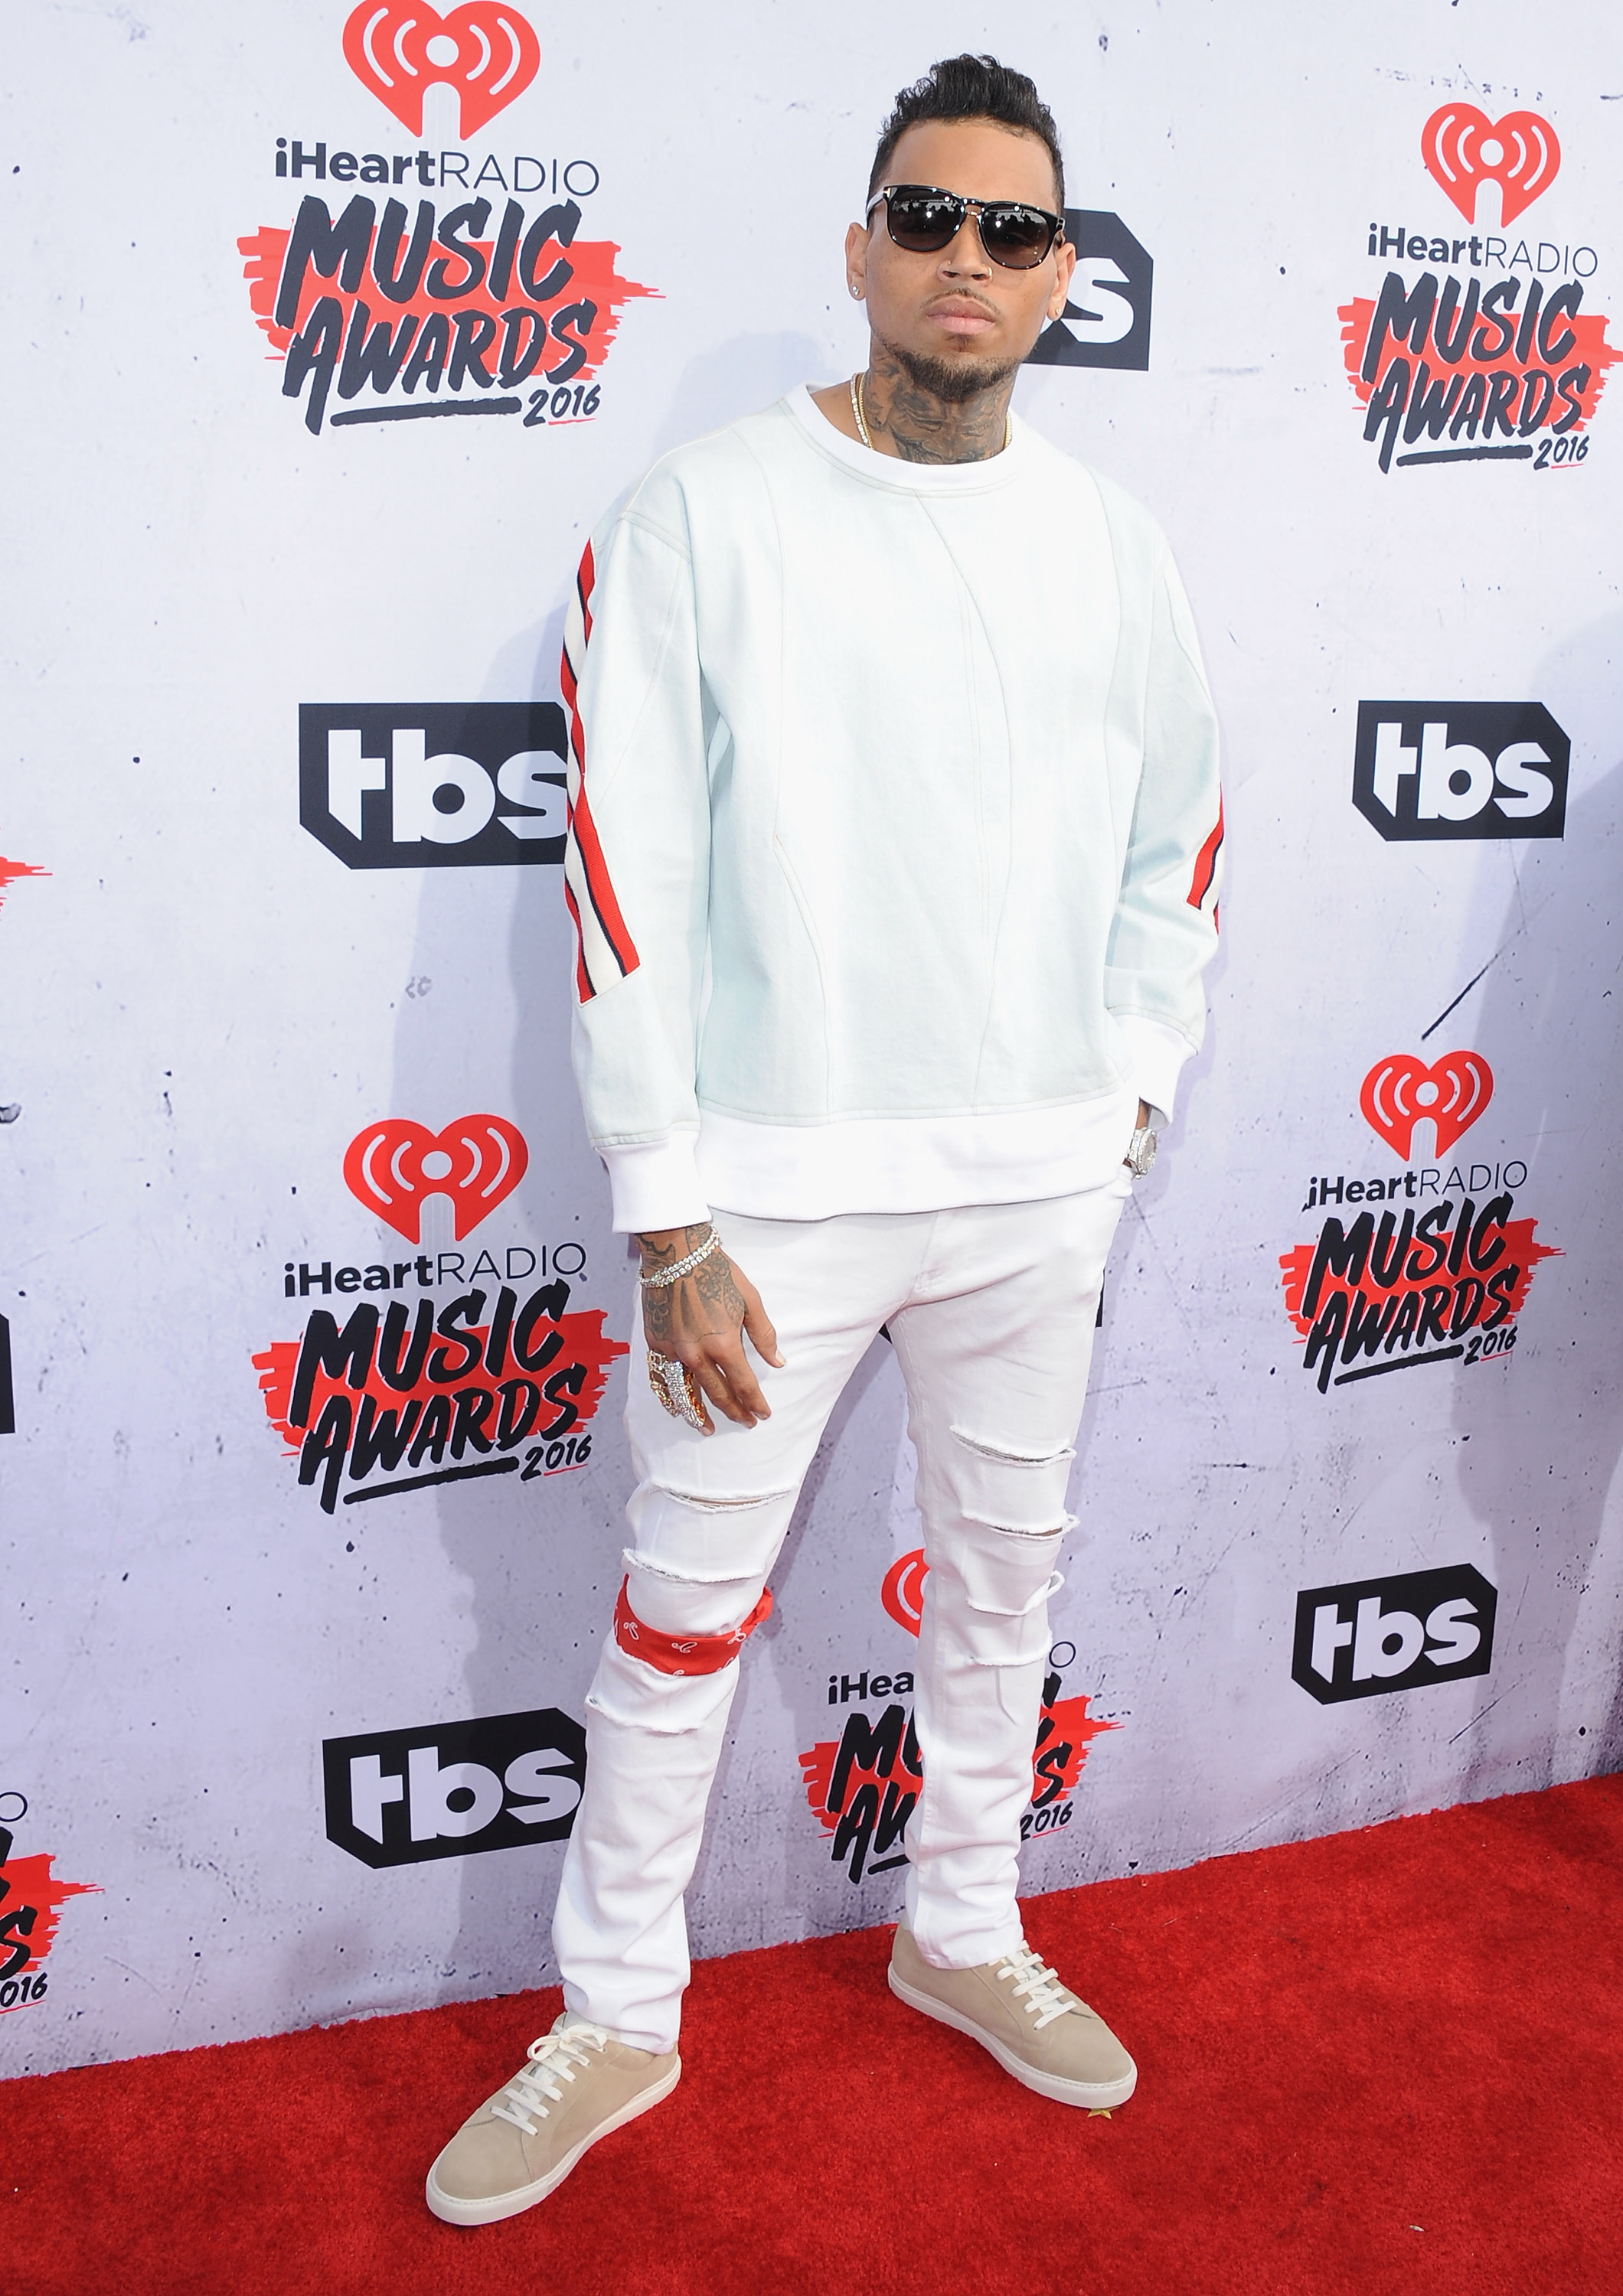 Singer arrives at iHeartRadio Music Awards on April 3, 2016 in Inglewood, California.